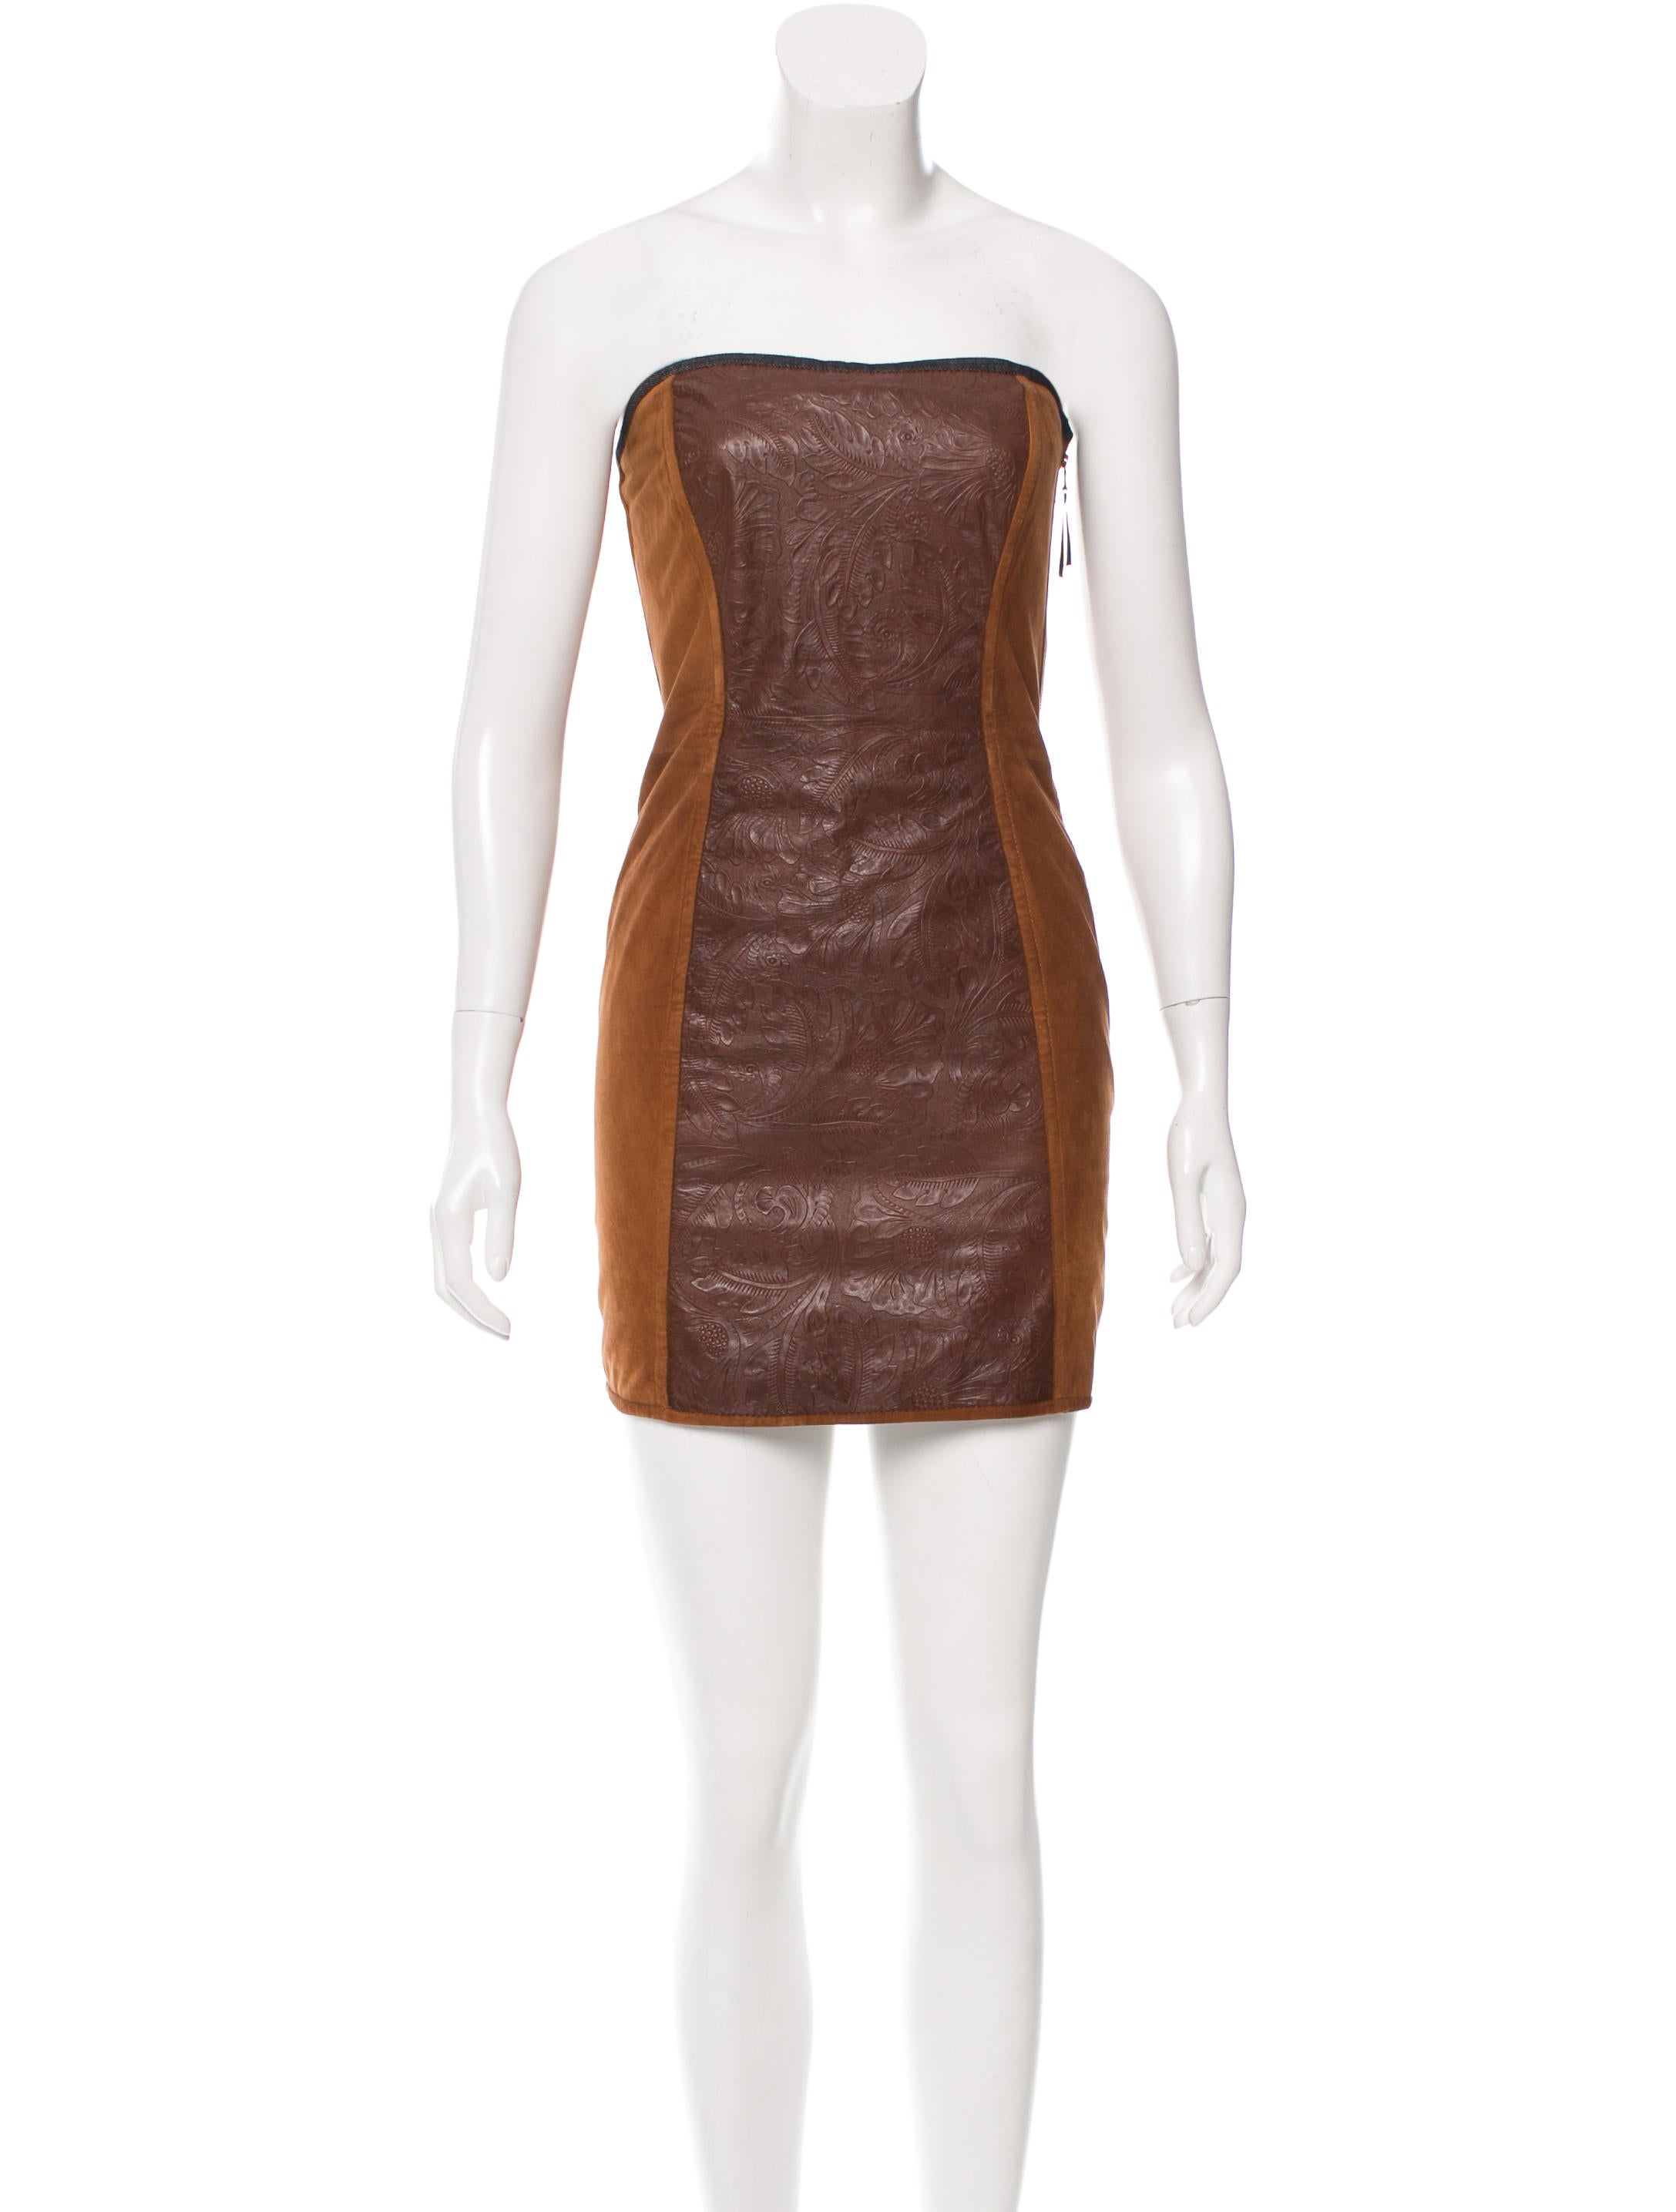 D Amp G Leather Accented Suede Dress Clothing Wdg33762